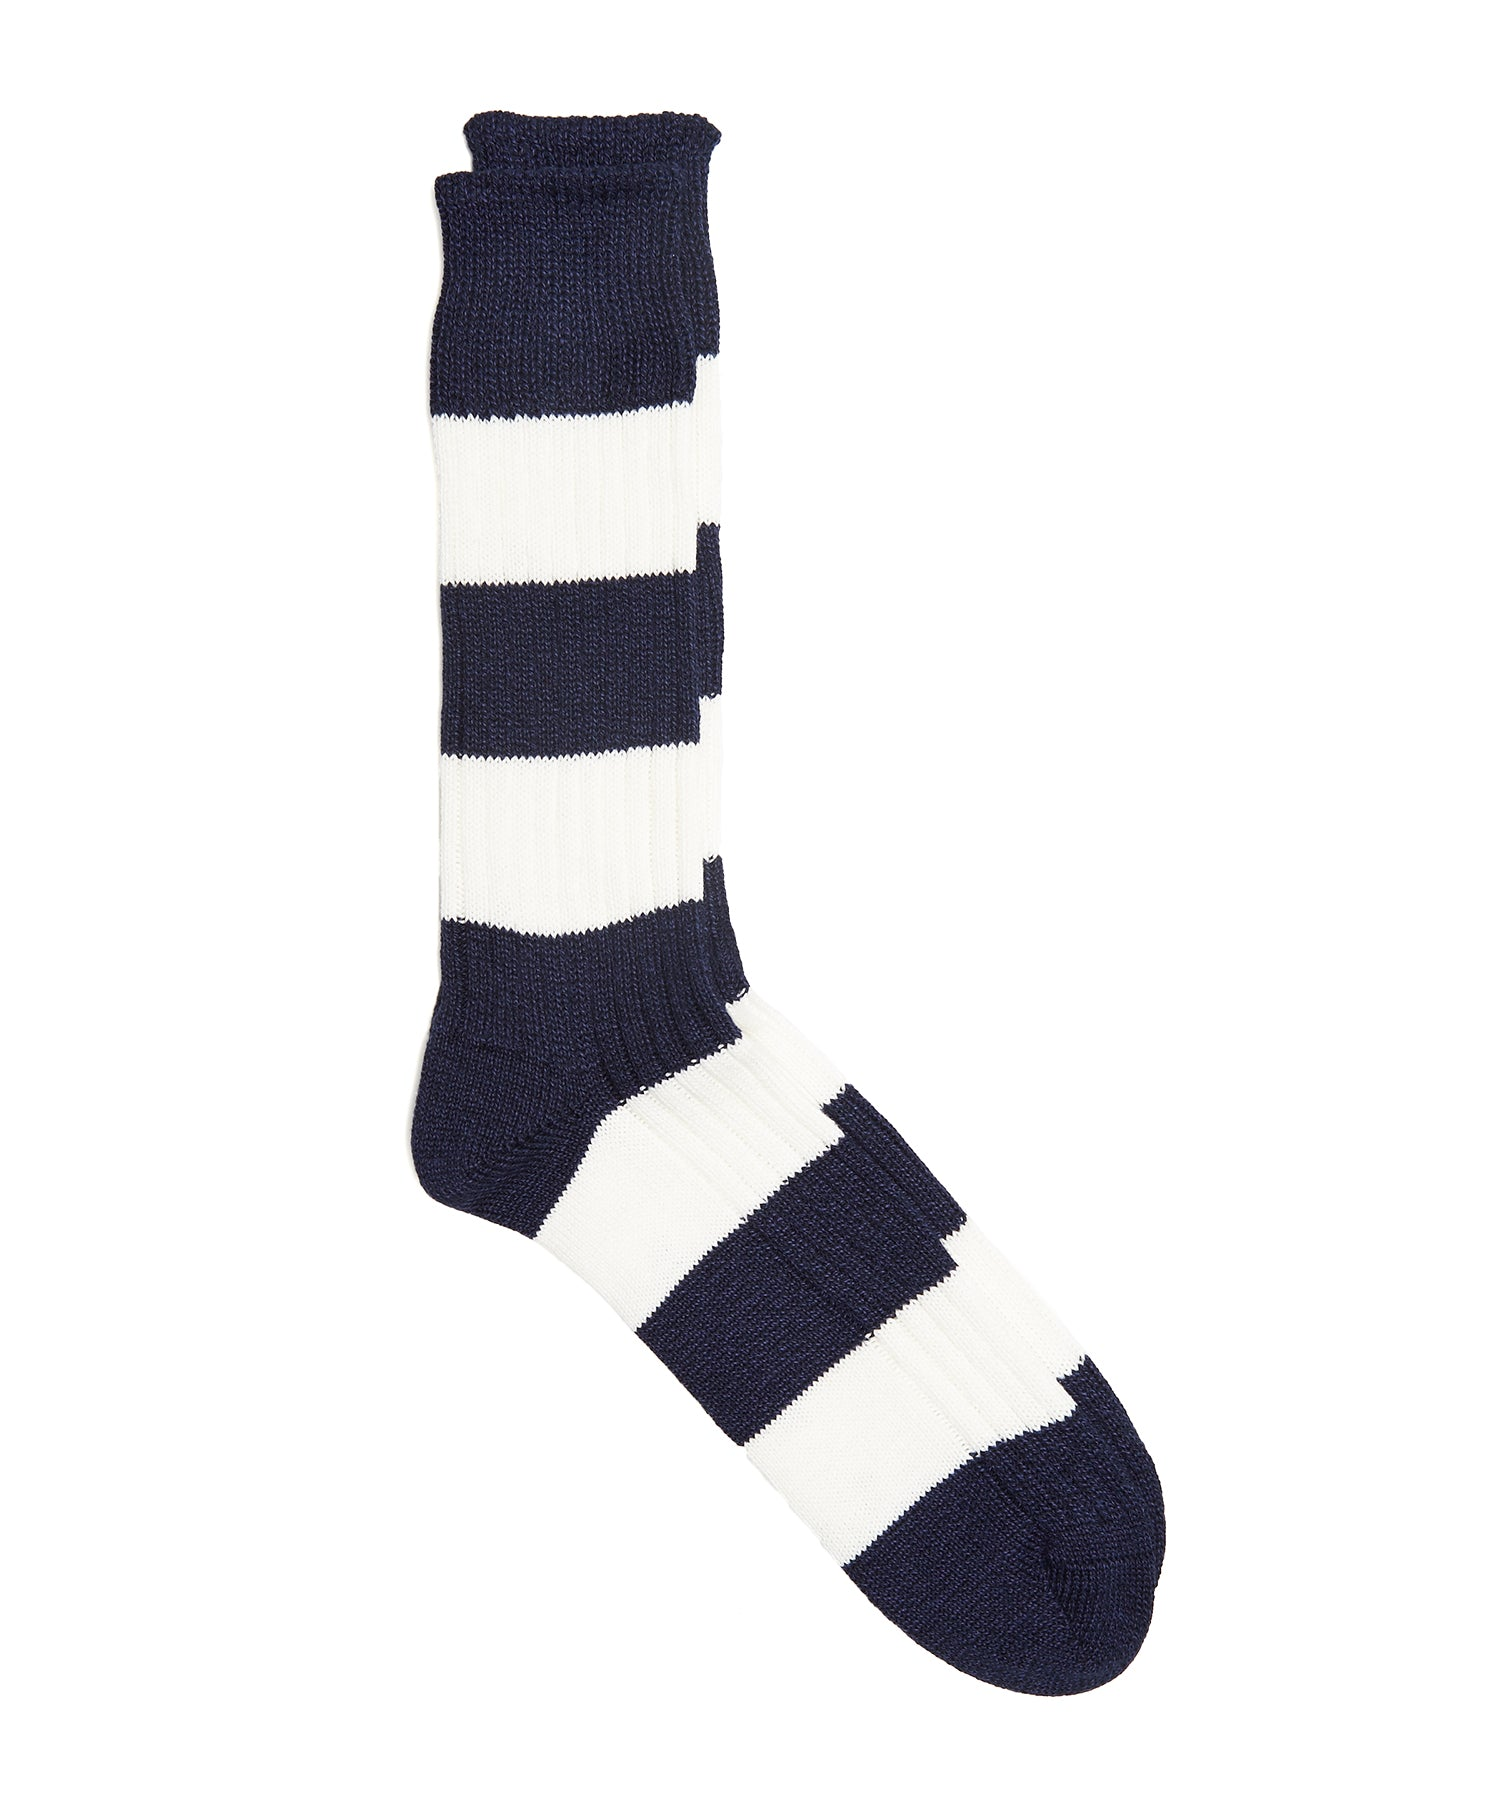 Corgi Rugby Sock in Midnight